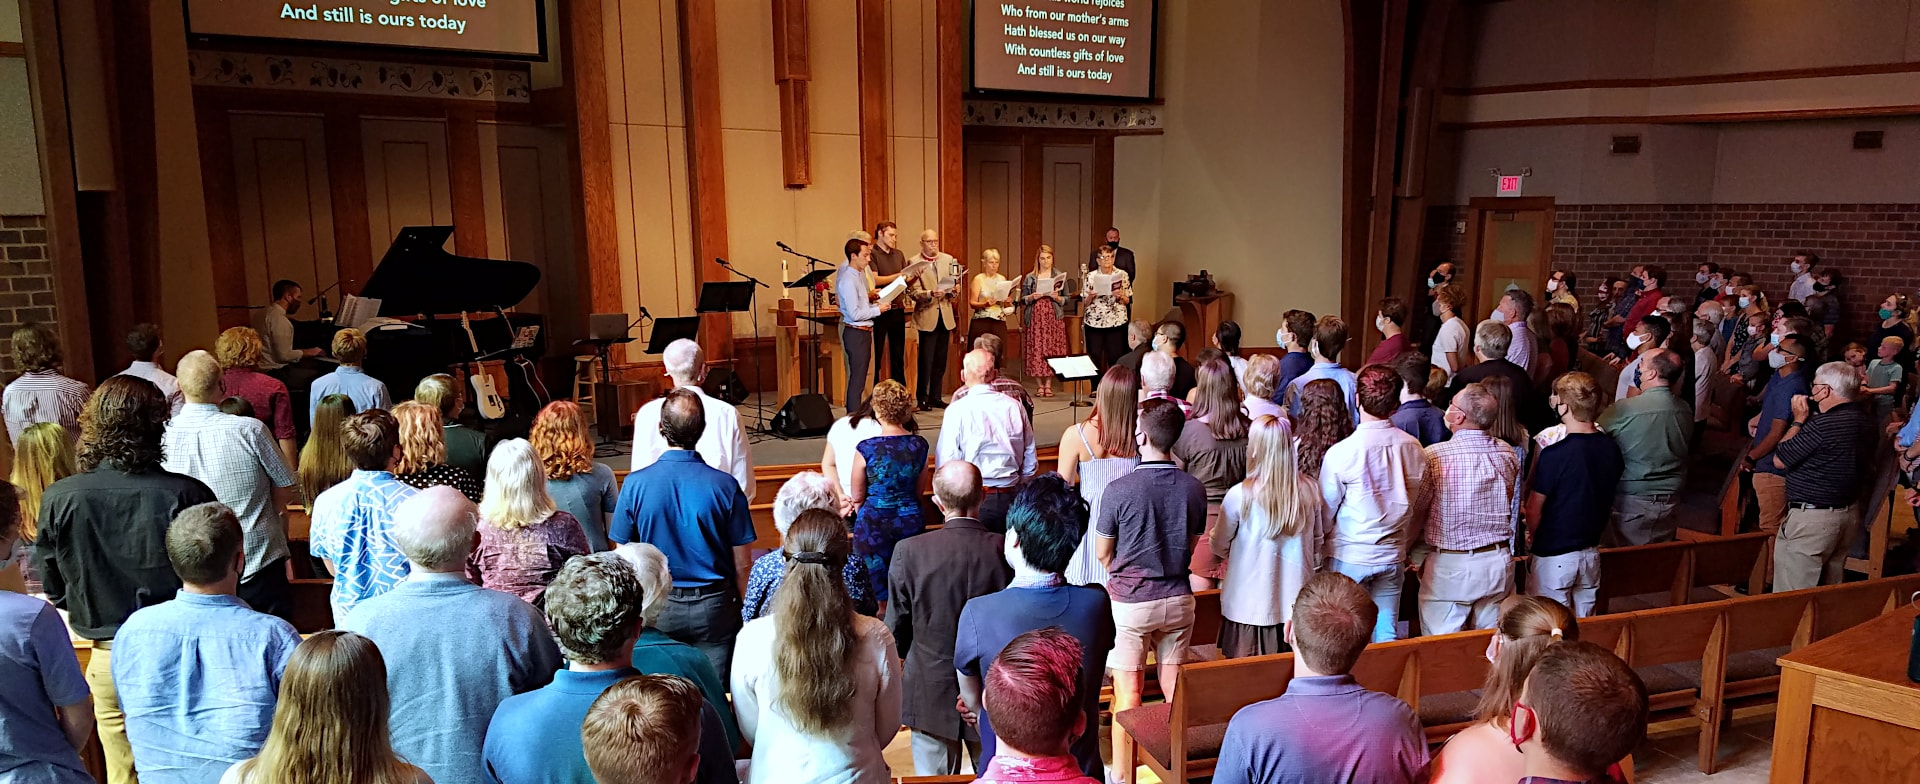 People worshiping in the sanctuary at Wisconsin Lutheran Chapel